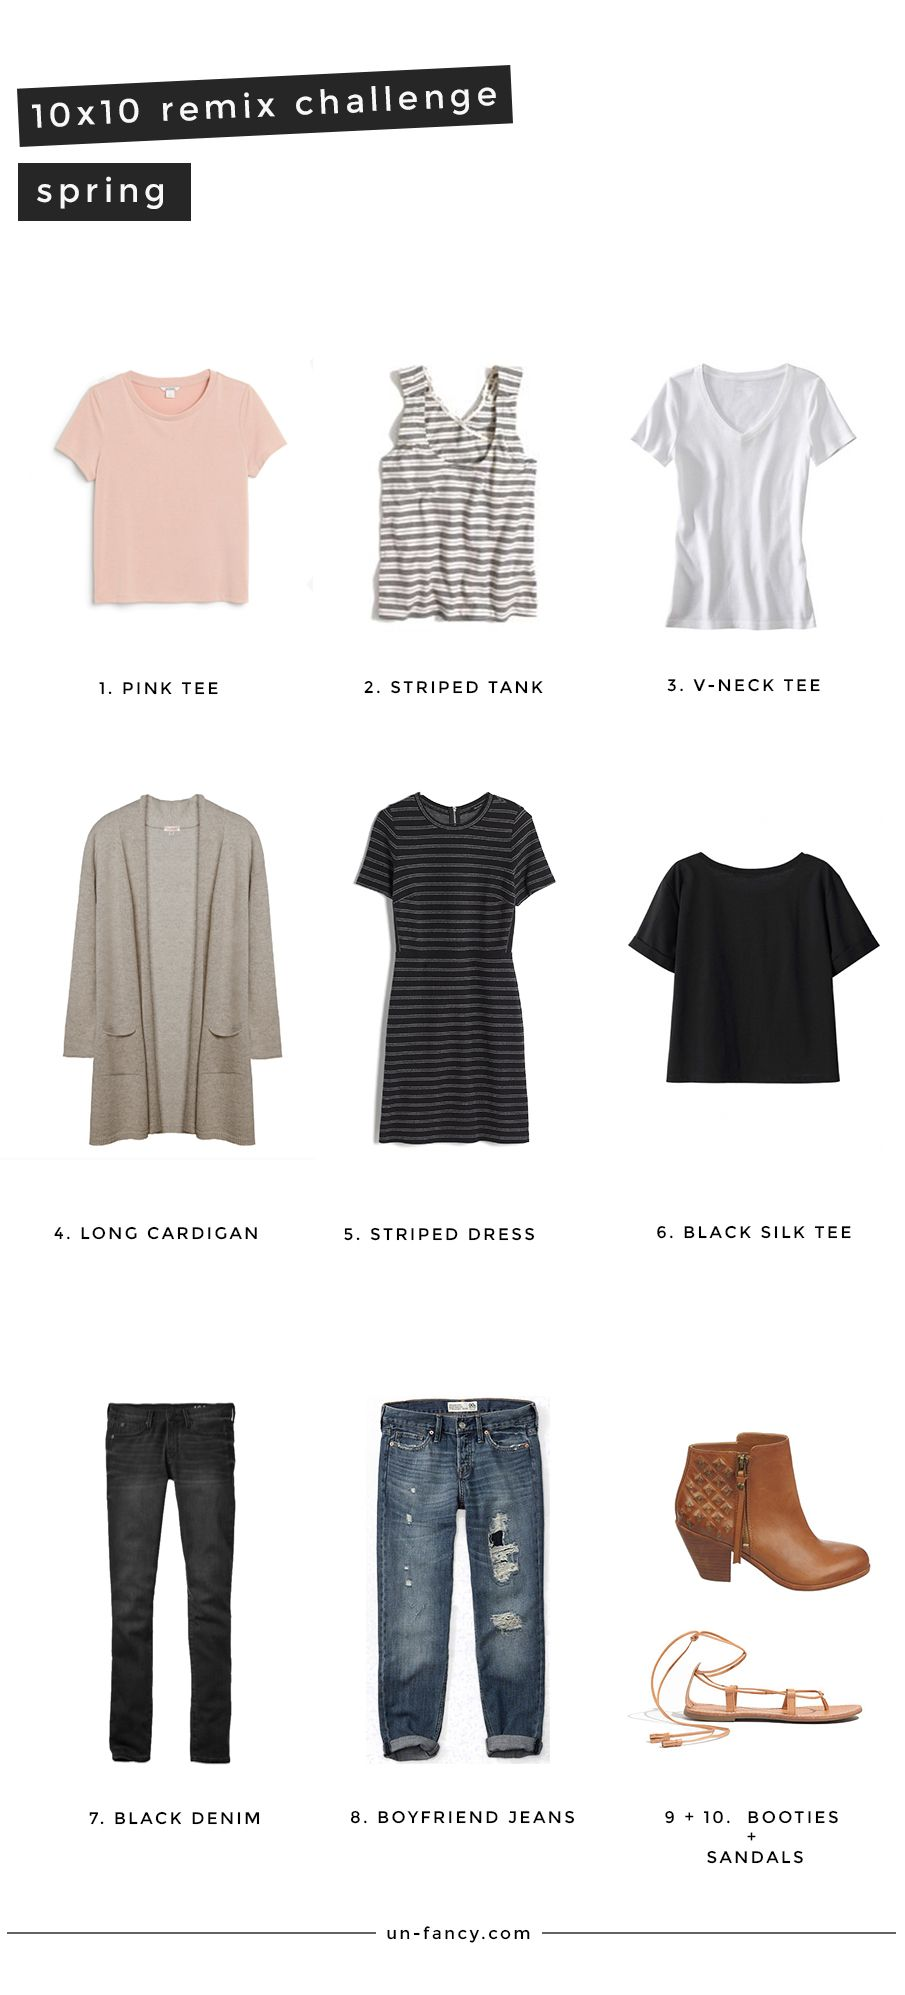 Spring Remix 10 Pieces 10 Outfits 10 Days Capsule Wardrobe Fashion Capsule Capsule Wardrobe Mom